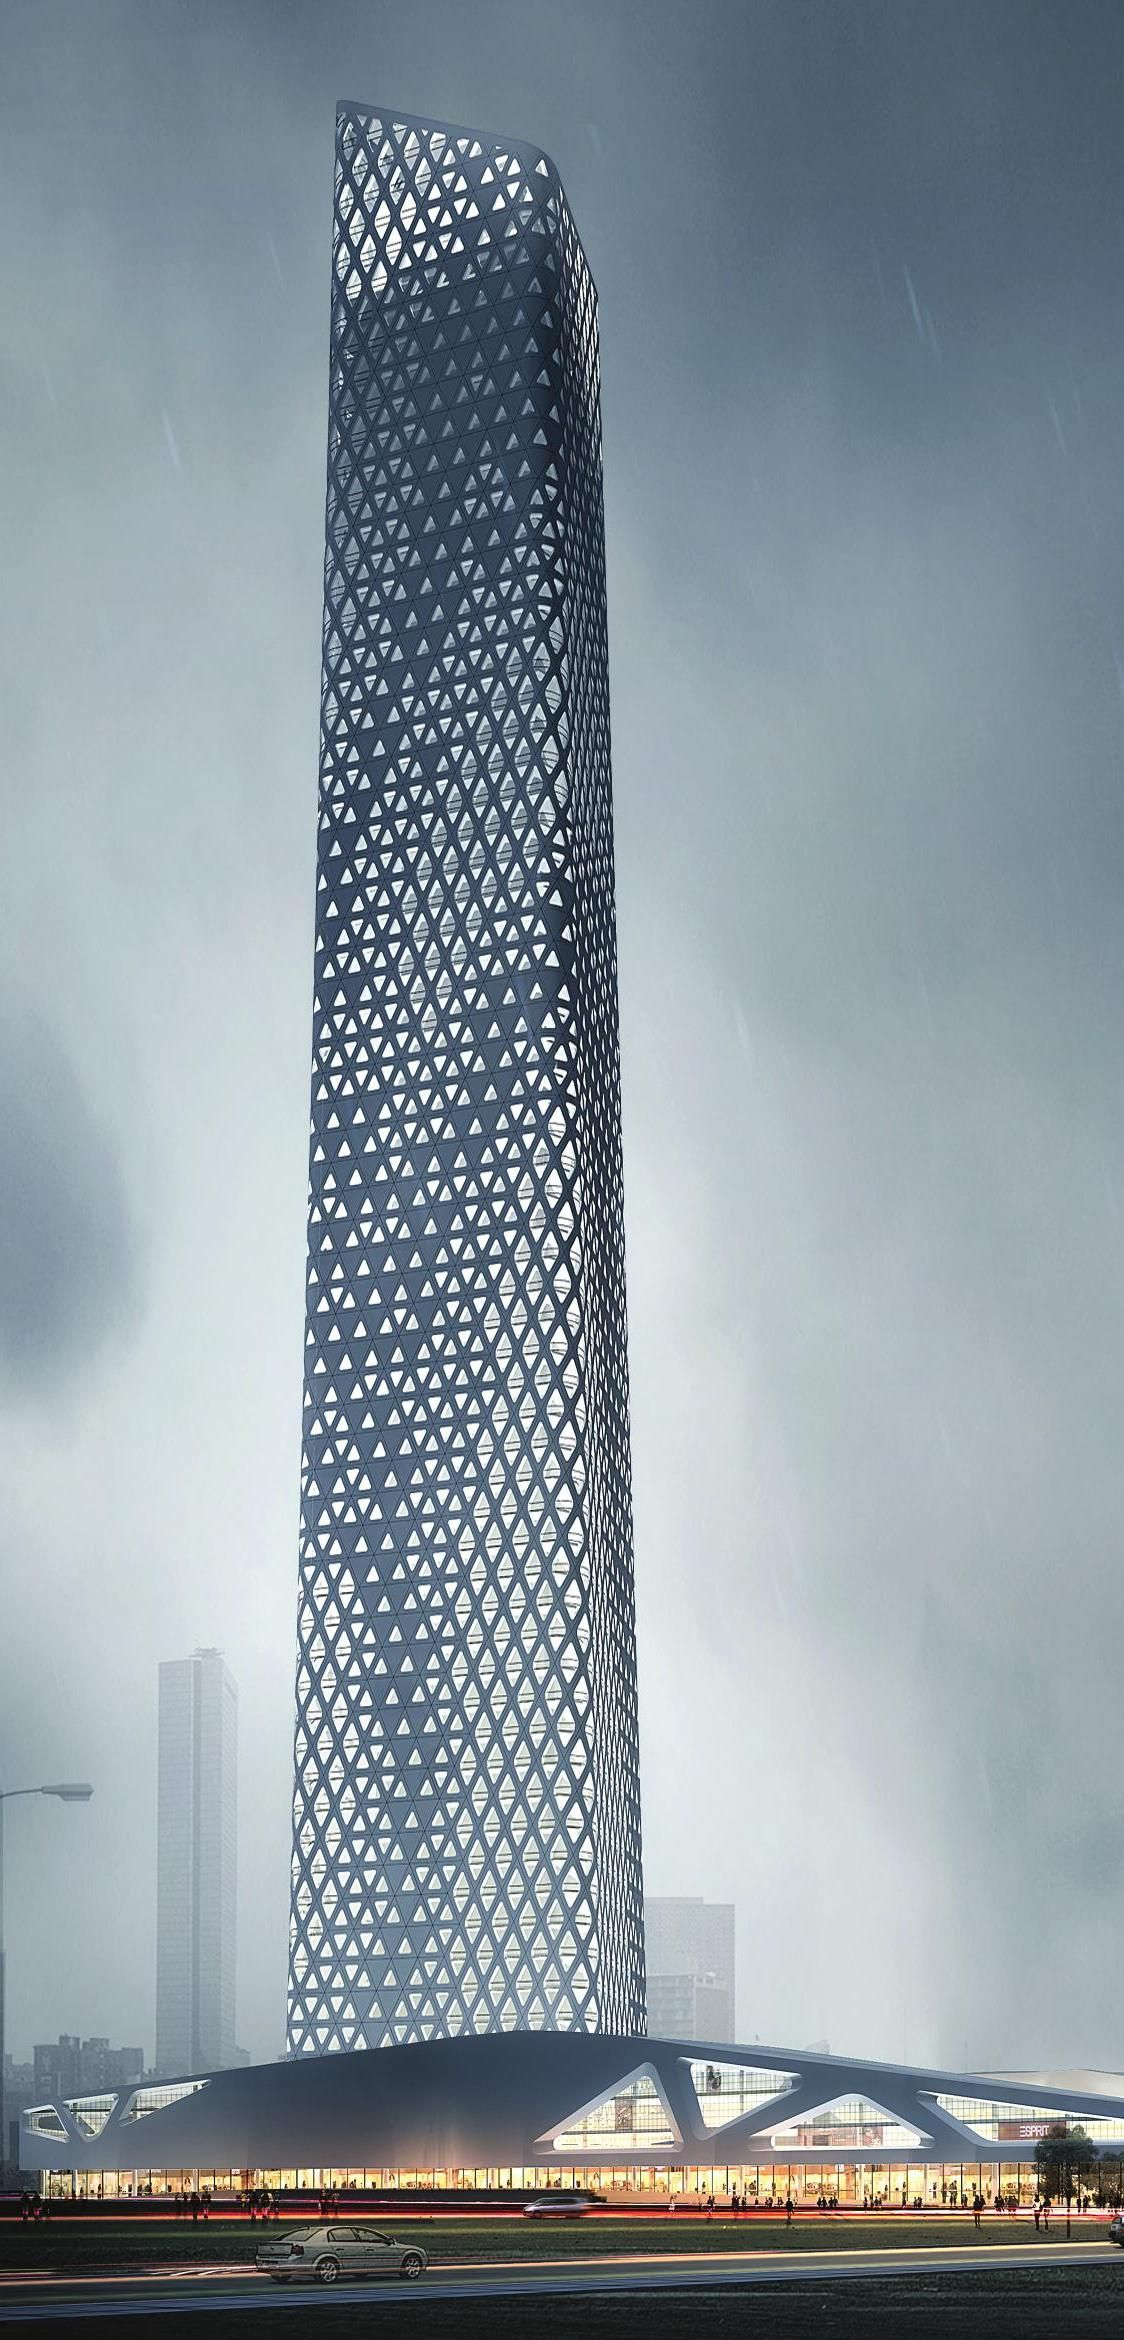 Nanning Tower China 60 Floors Height 245m Proposal